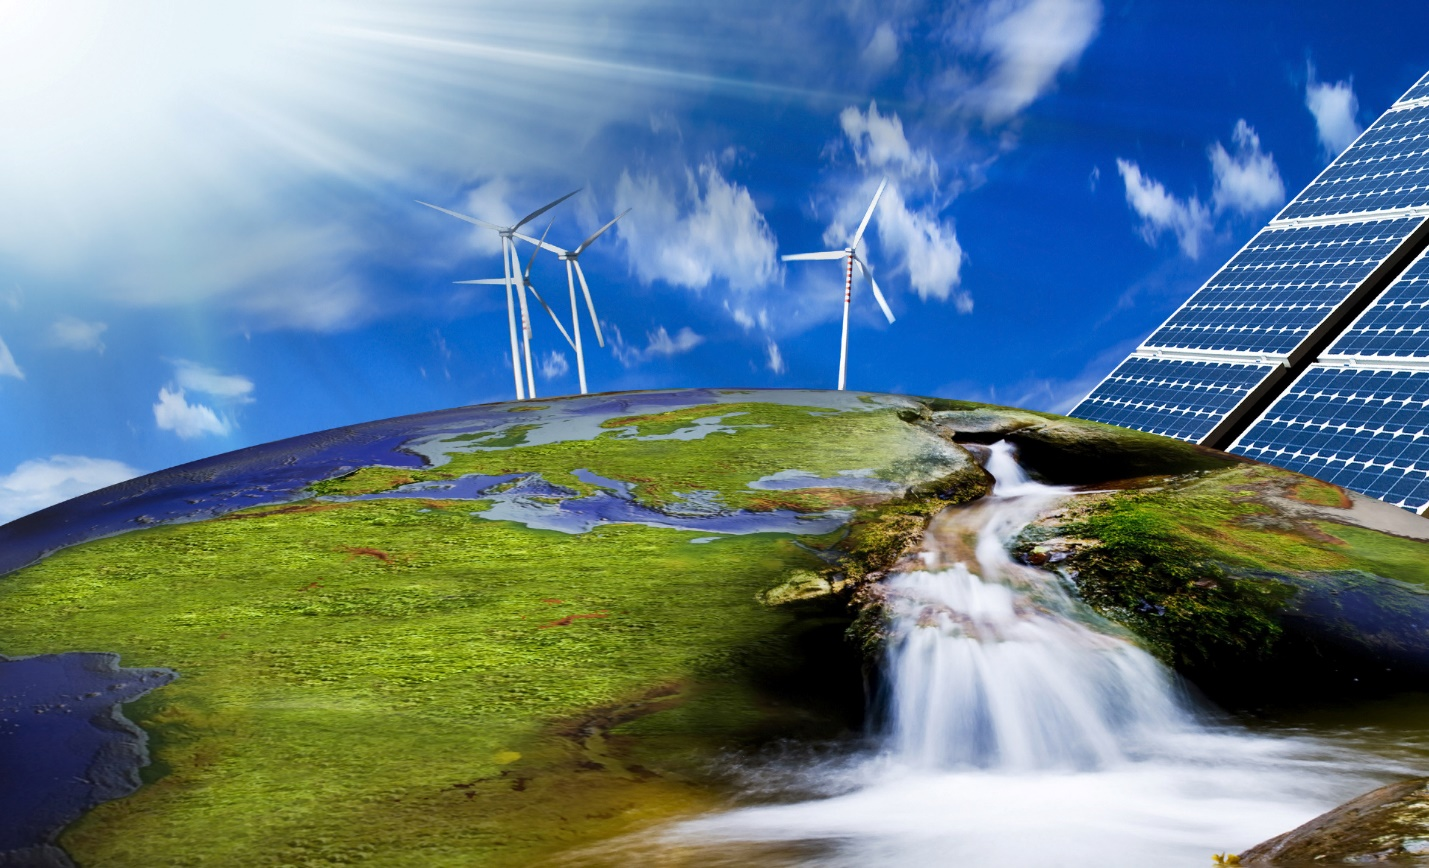 renewable souces of energy Renewable energy definition, any naturally occurring, theoretically inexhaustible source of energy, as biomass, solar, wind, tidal, wave, and hydroelectric power.